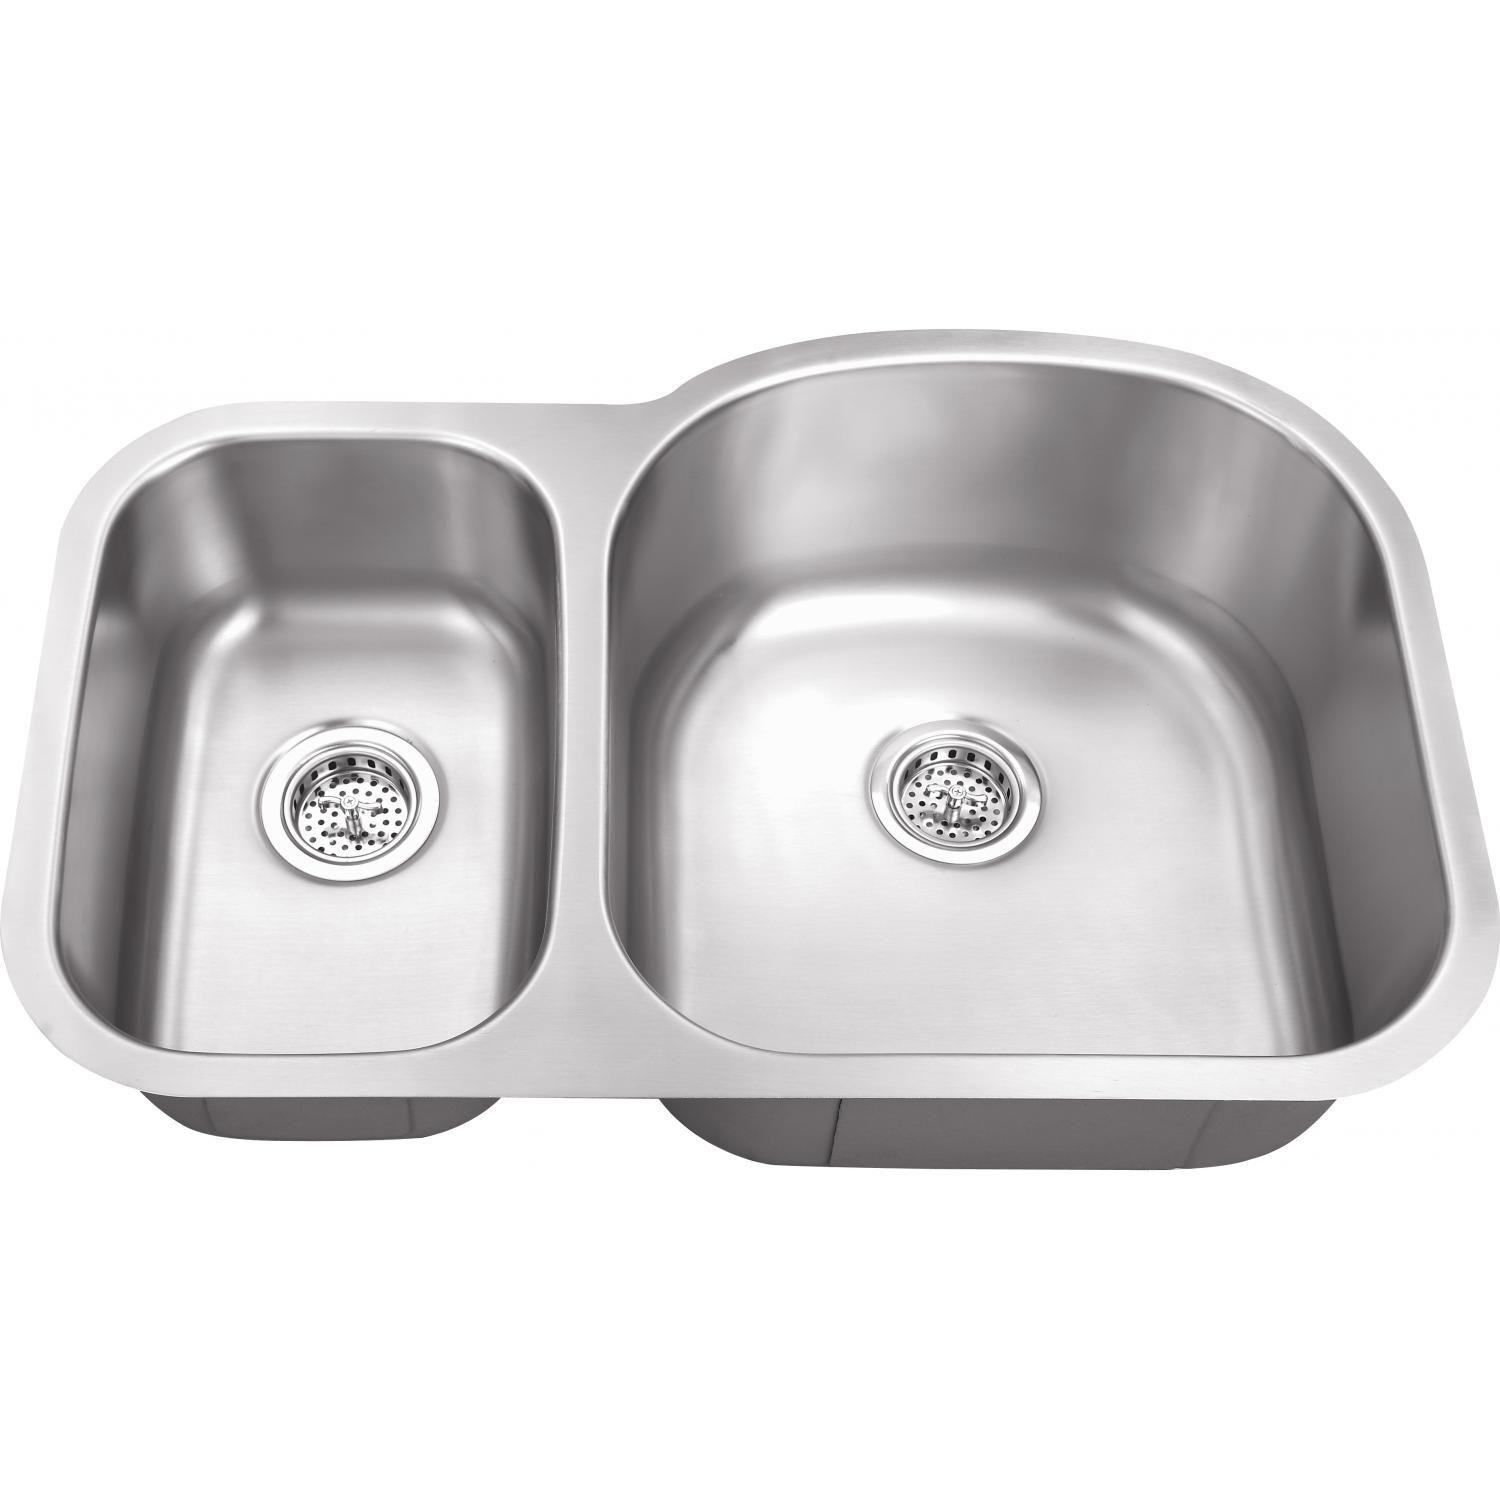 Platinum Sinks 31 X 20 16 Gauge 30 70 Offset Double Bowl Stainless Steel Undermount Sink Pslux 308rv Undermount Stainless Steel Sink Double Bowl Kitchen Sink Sink